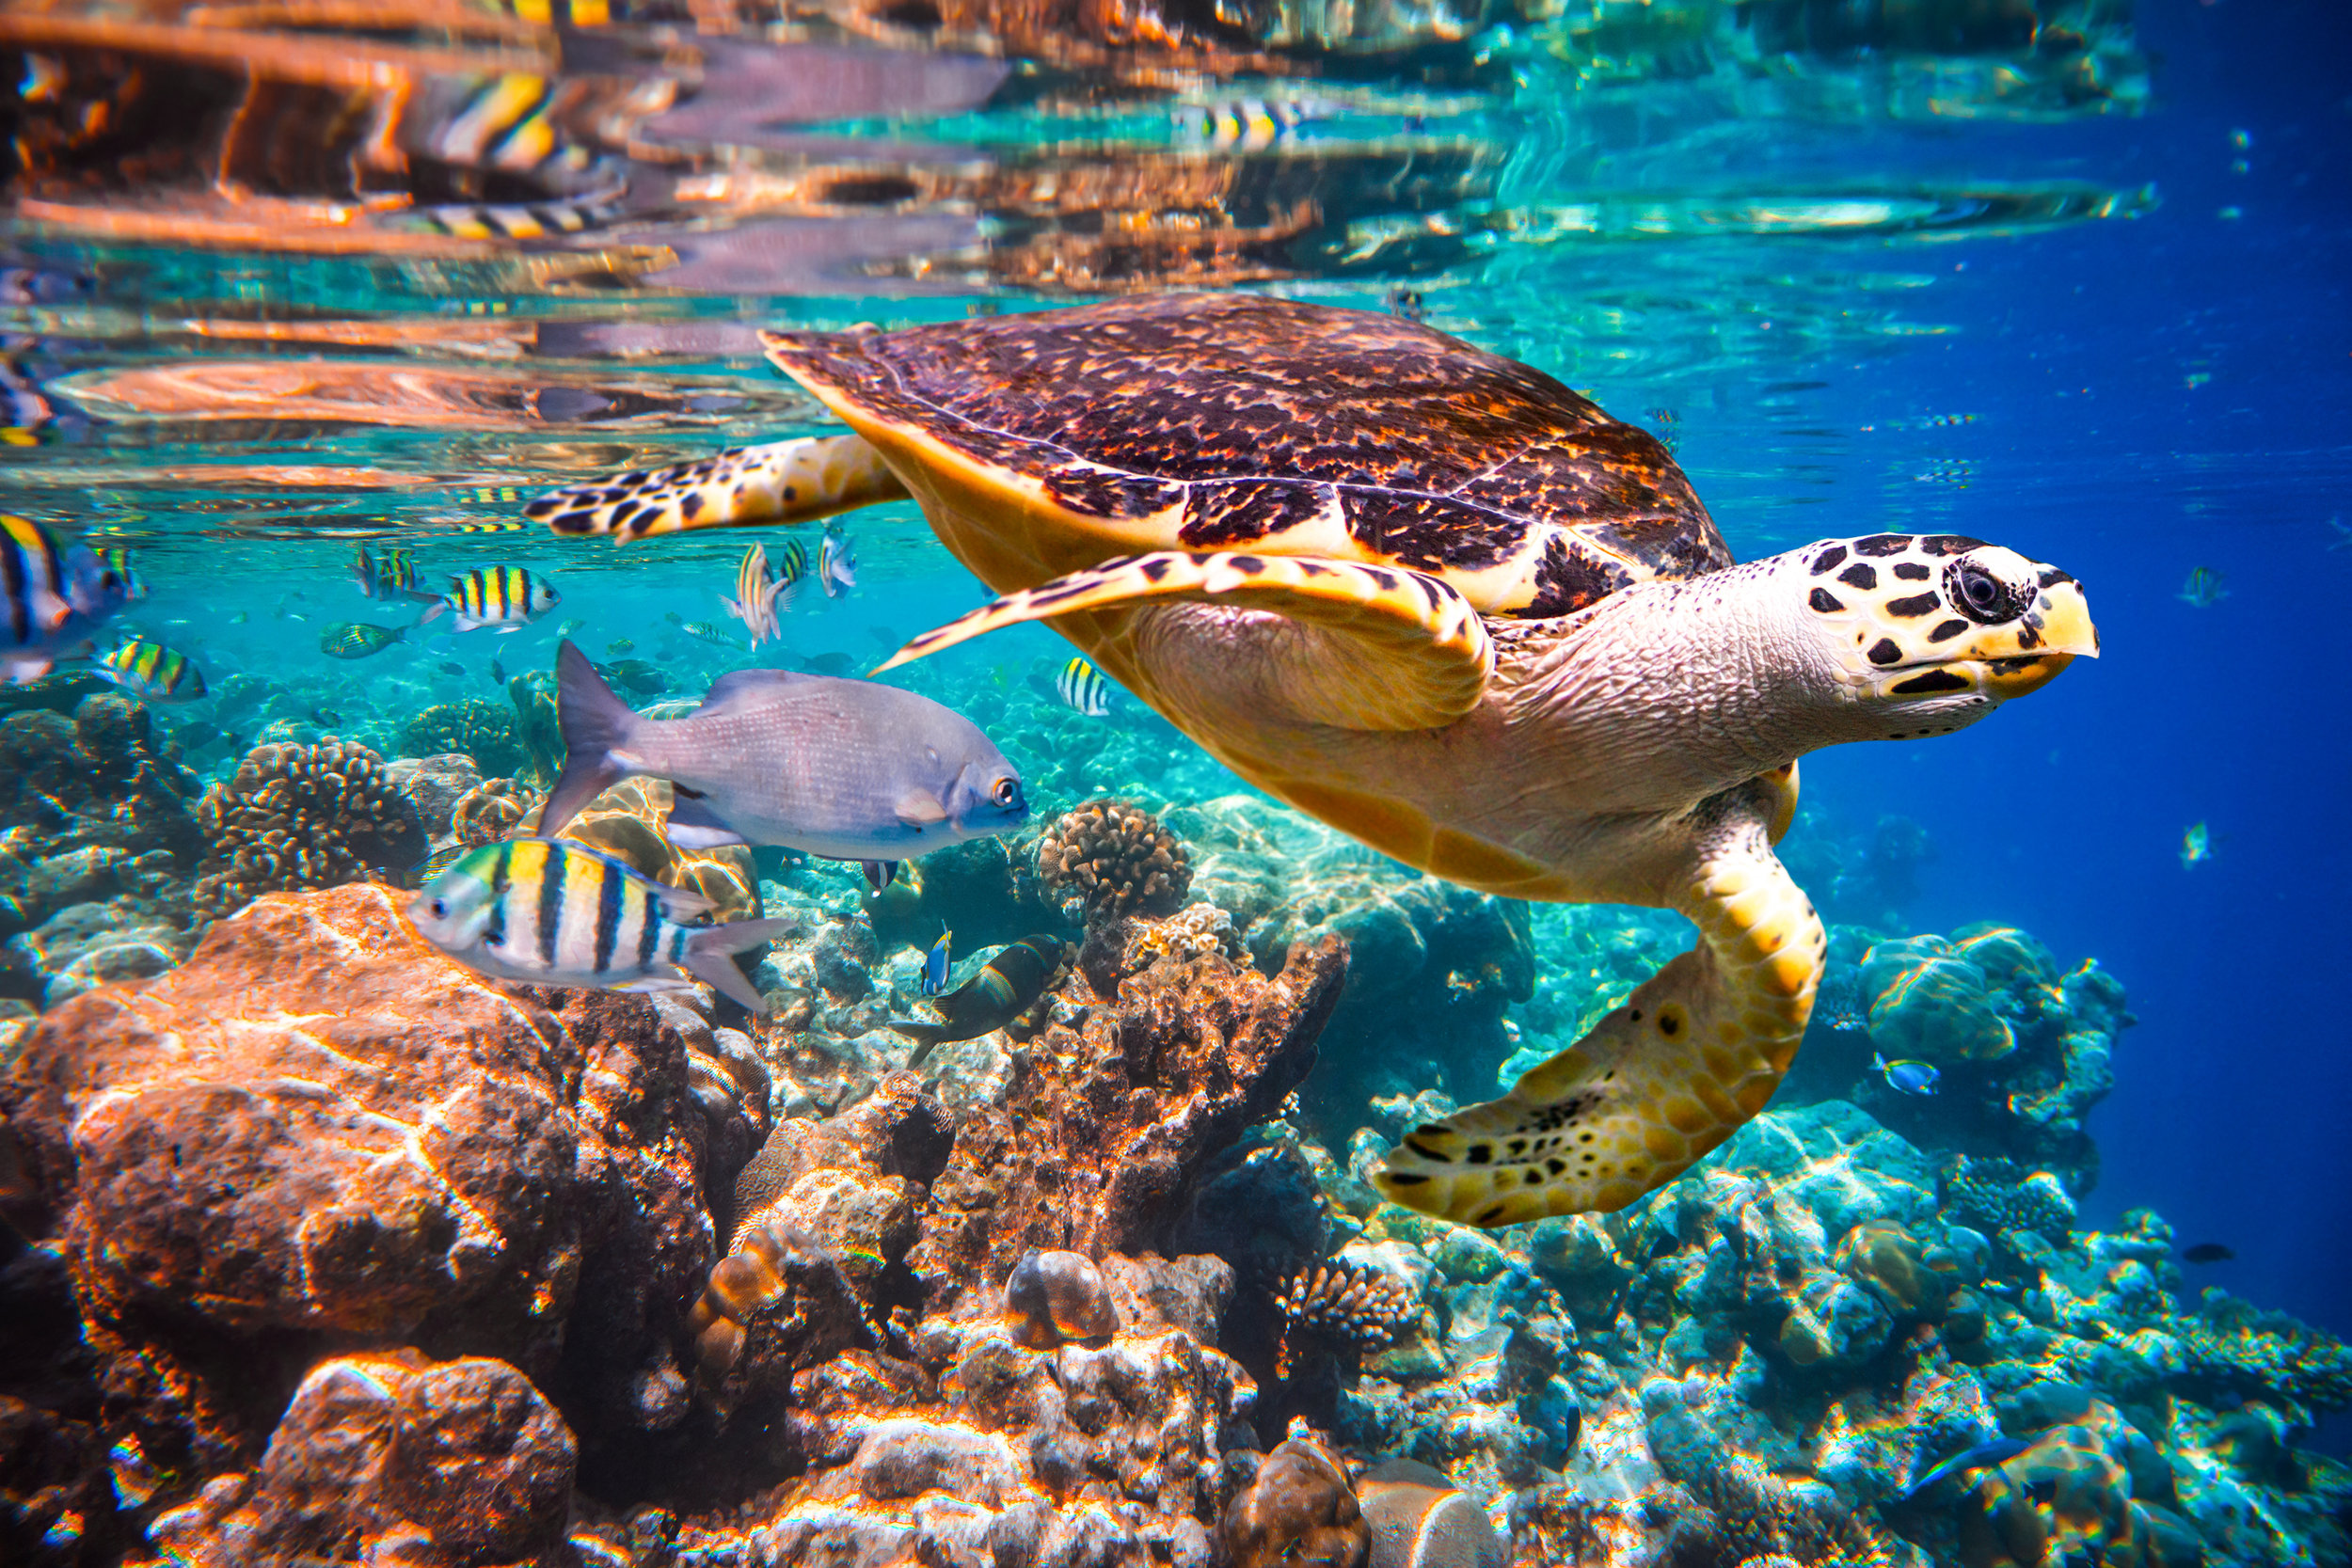 A Hawksbill turtle in the Maldives. Photo credit: Andrey Armyagov/Shutterstock.com